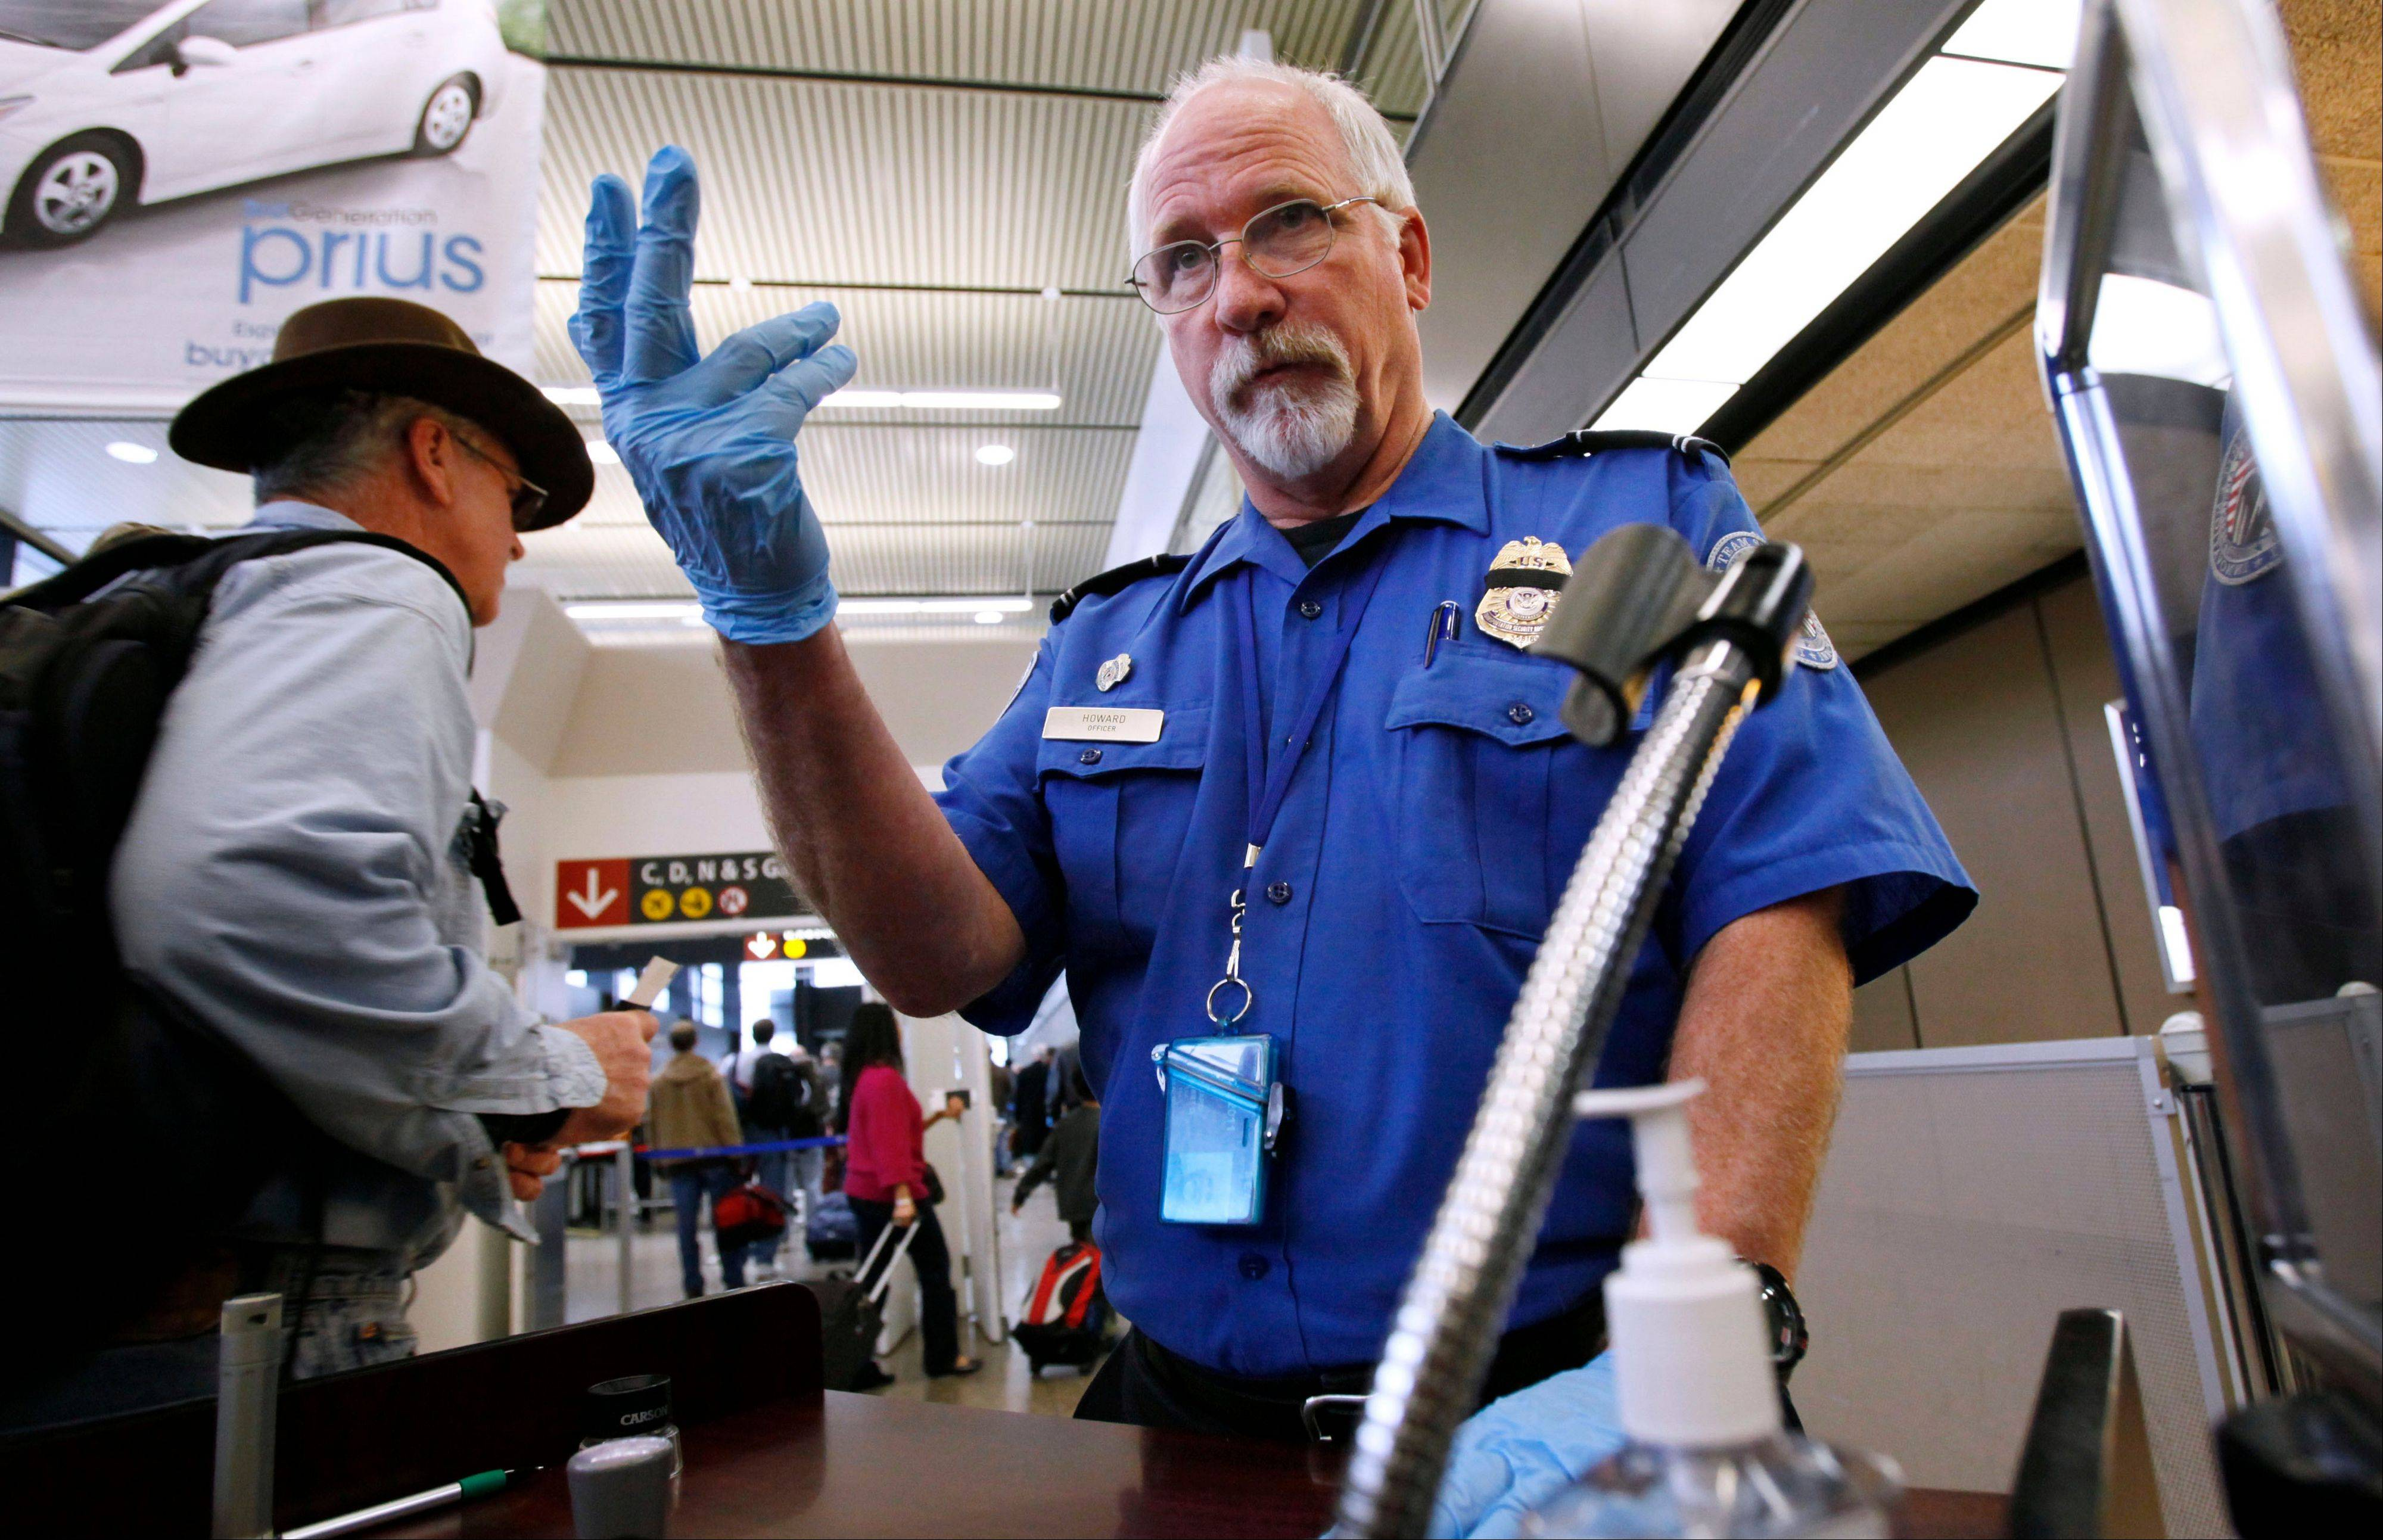 In this Jan. 4, 2010 photo, TSA officer Robert Howard signals an airline passenger forward at a security check-point at Seattle-Tacoma International Airport in SeaTac, Wash. Flight attendants, pilots, federal air marshals and even insurance companies are part of a growing backlash to the Transportation Security Administration�s new policy allowing passengers to carry small knives and sports equipment like souvenir baseball bats and golf clubs onto planes.